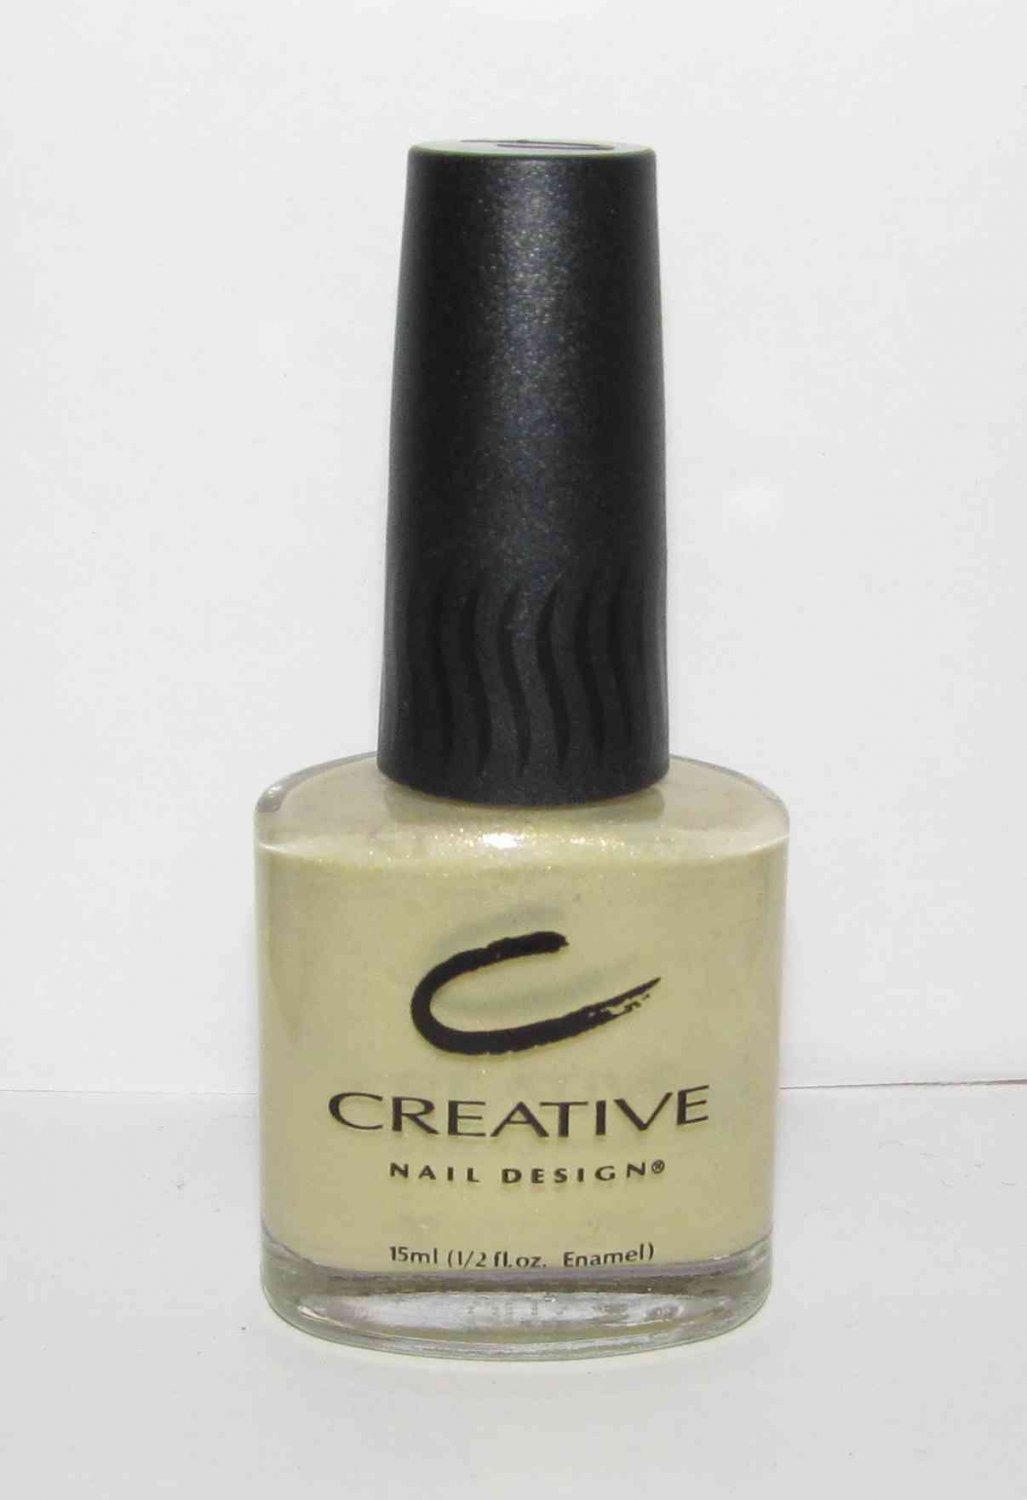 CND (Creative Nail Design) Nail Polish - Light Diffusion